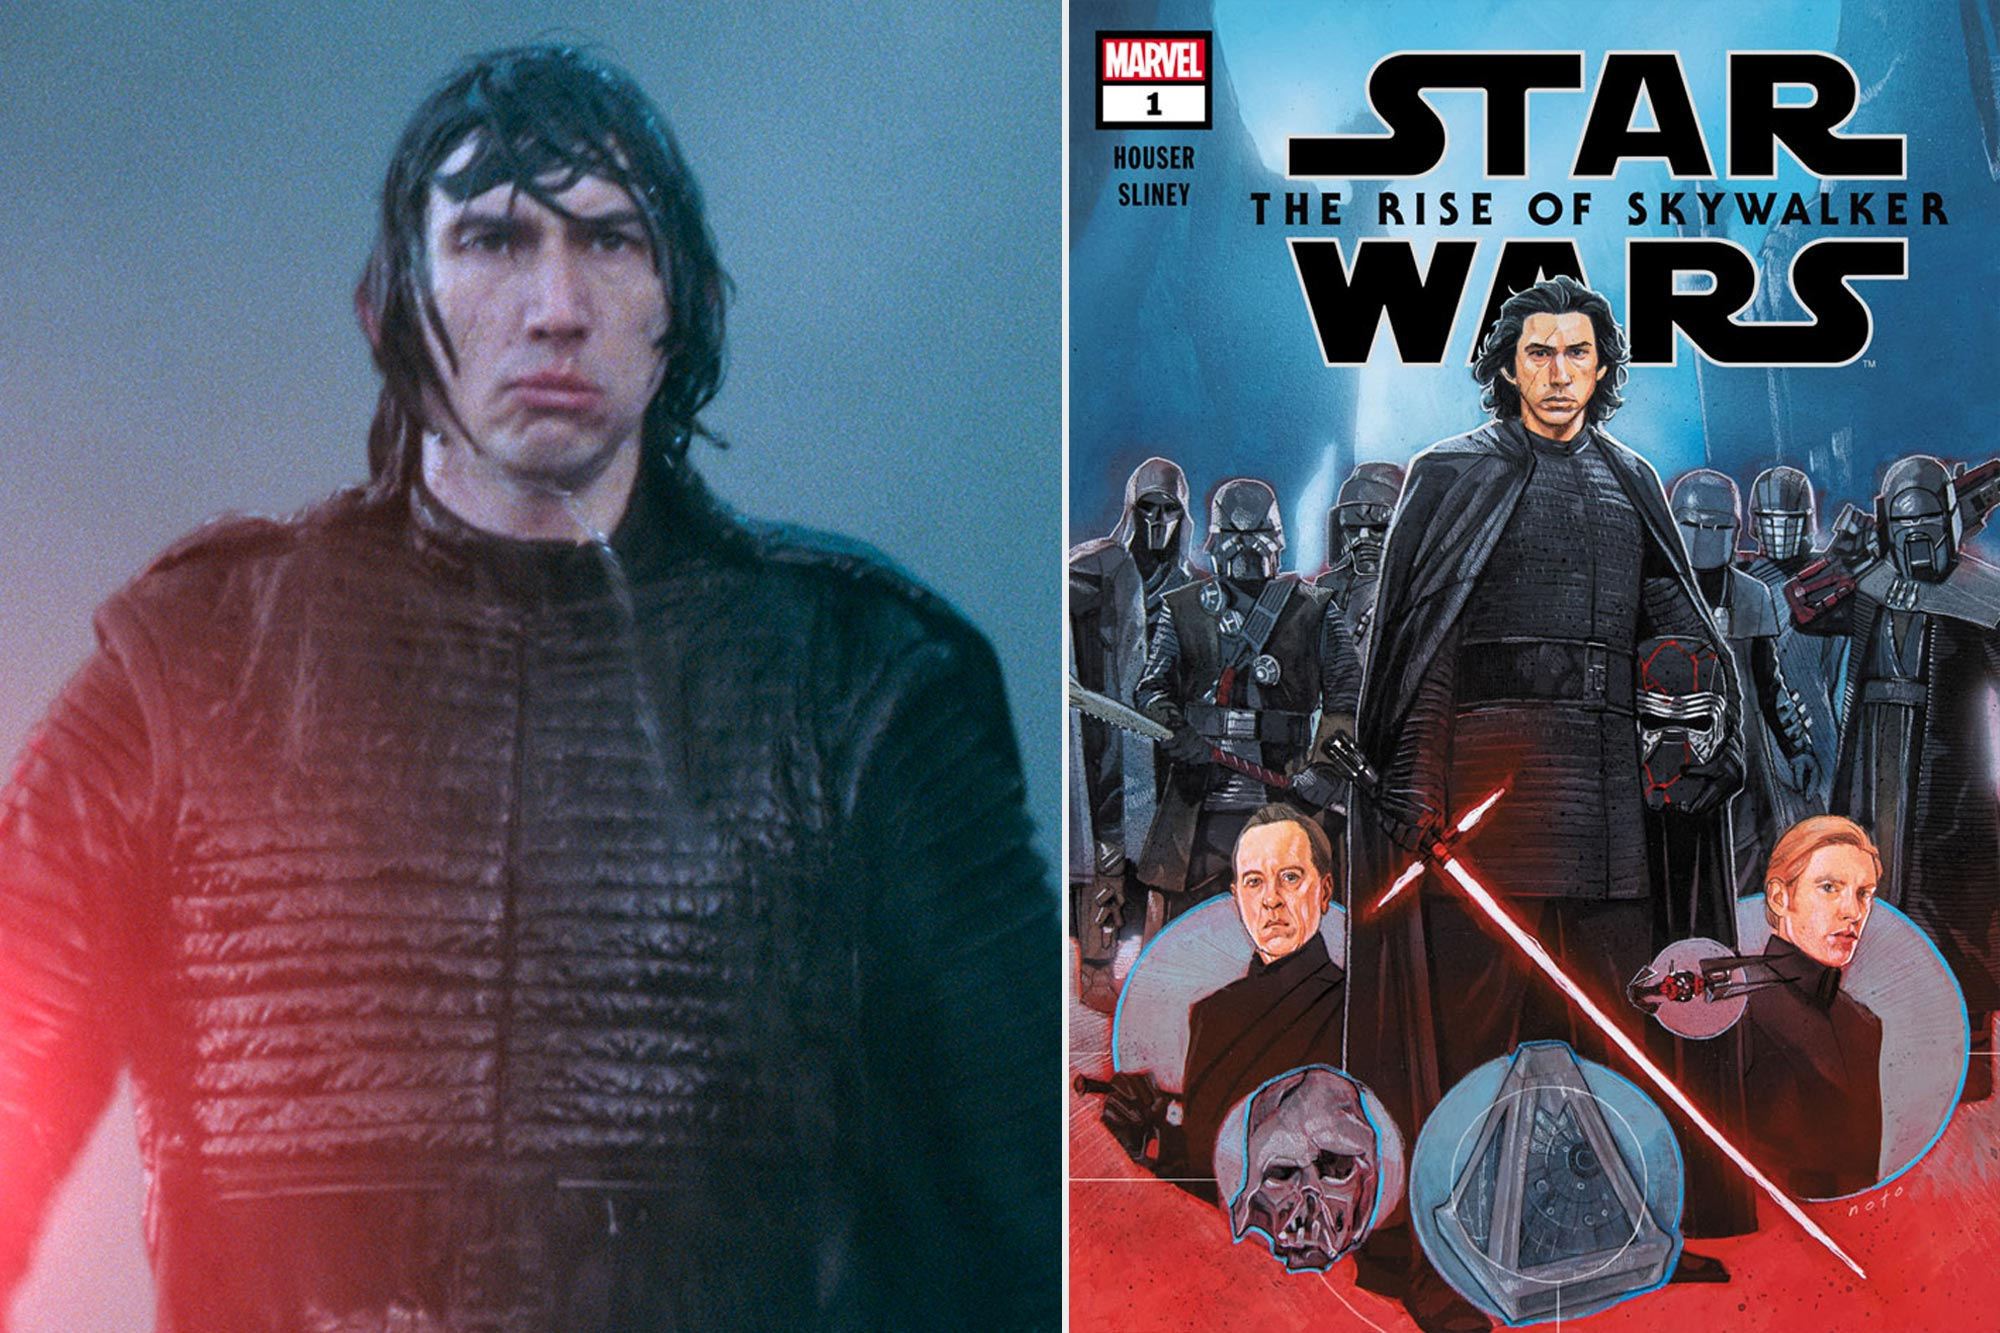 Star Wars The Rise Of Skywalker Deleted Scenes Coming To Comic Book Ew Com